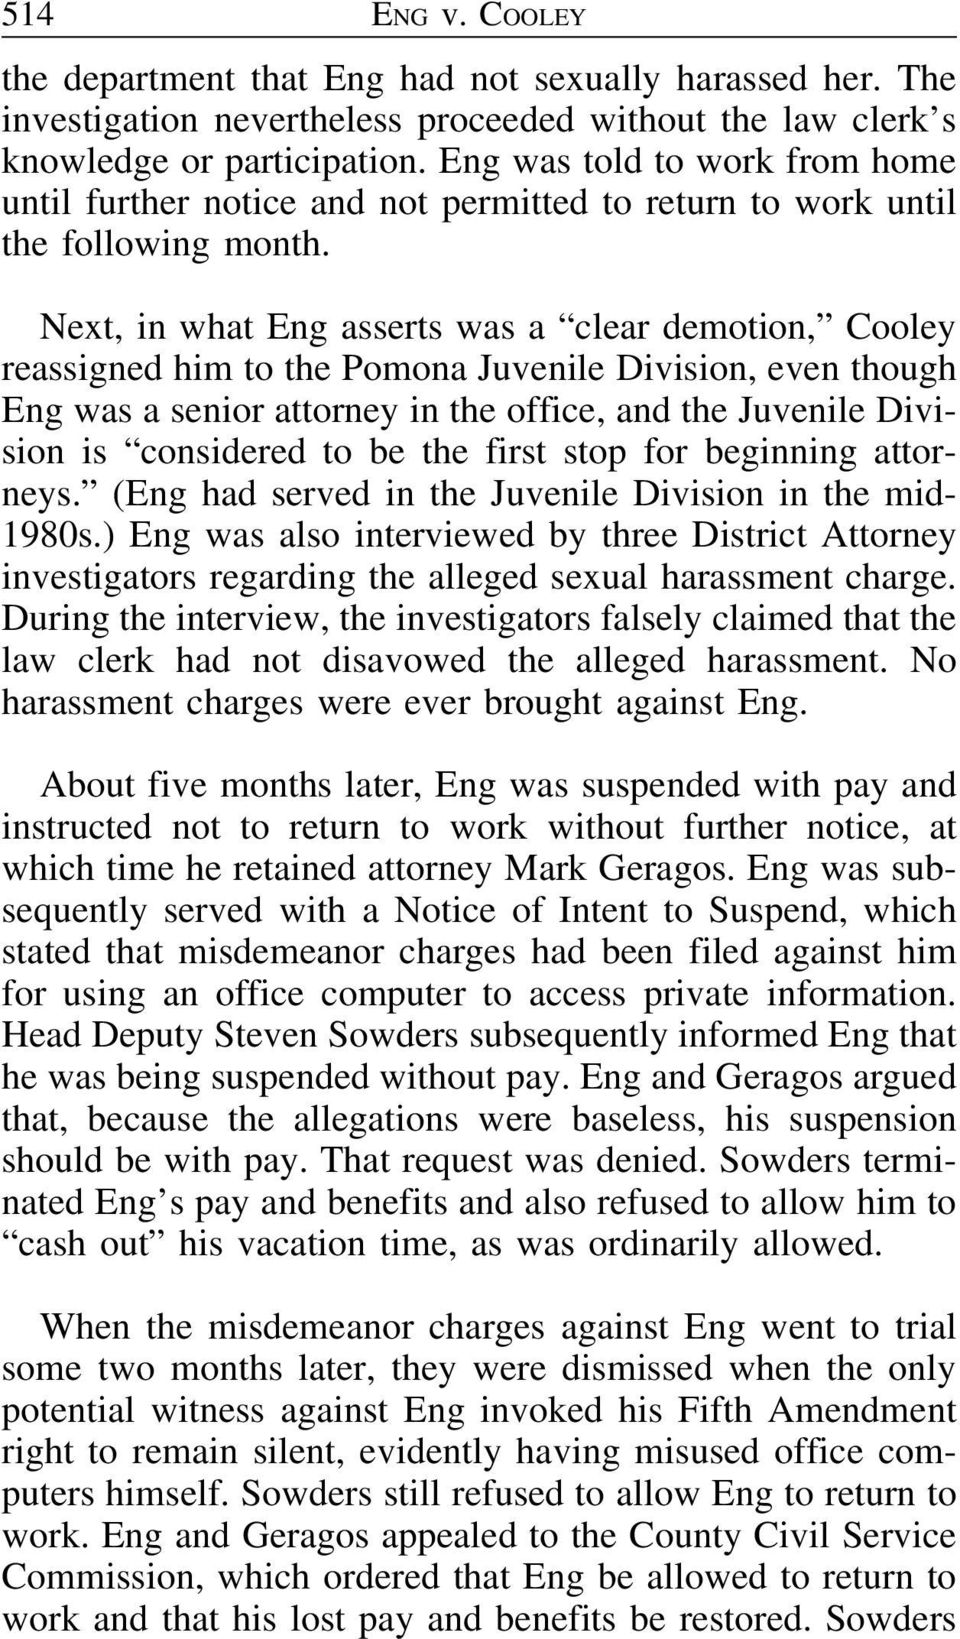 Next, in what Eng asserts was a clear demotion, Cooley reassigned him to the Pomona Juvenile Division, even though Eng was a senior attorney in the office, and the Juvenile Division is considered to